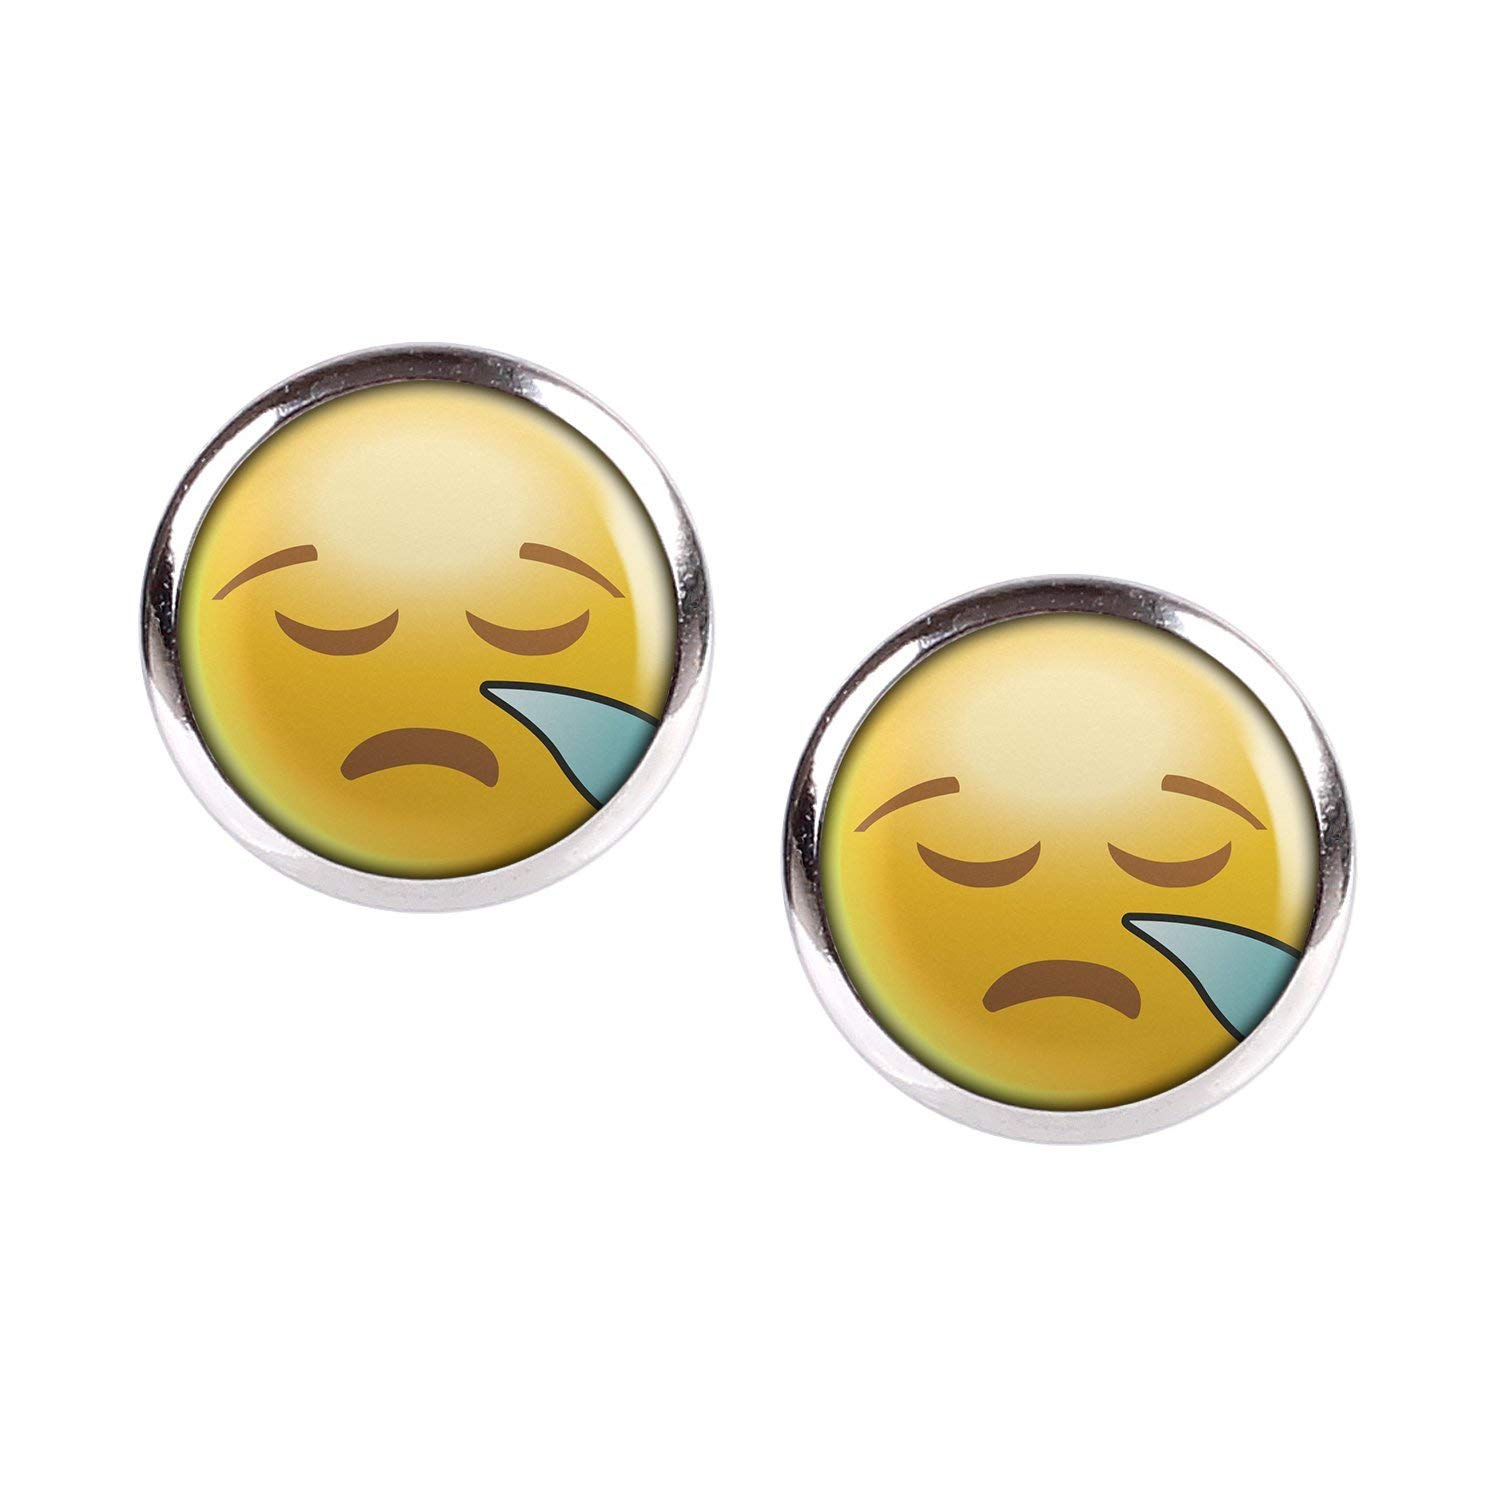 40 silver different sizes Stud Earring Pair with Cabochon Picture Emoji smileys Smiley face no